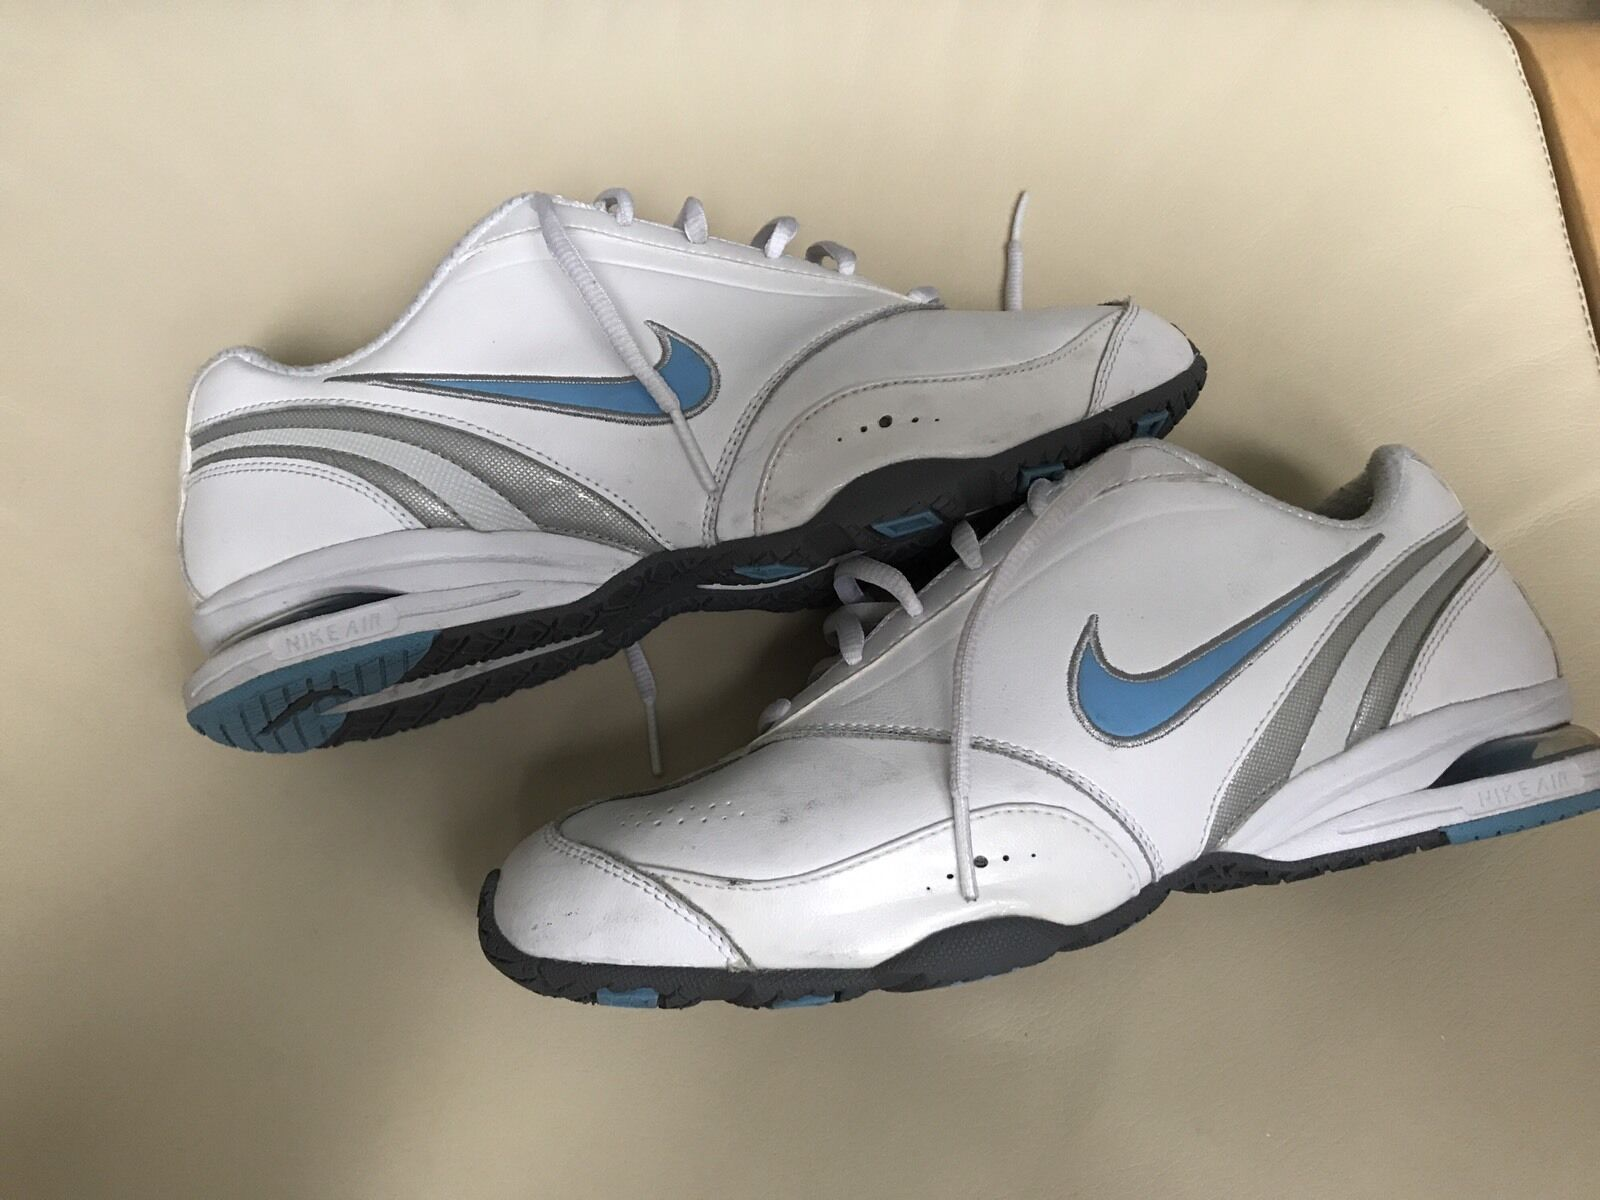 White Ladies Nike Air Max Visi Fly Leather Trainers  shoes Size 6 bluee Tick